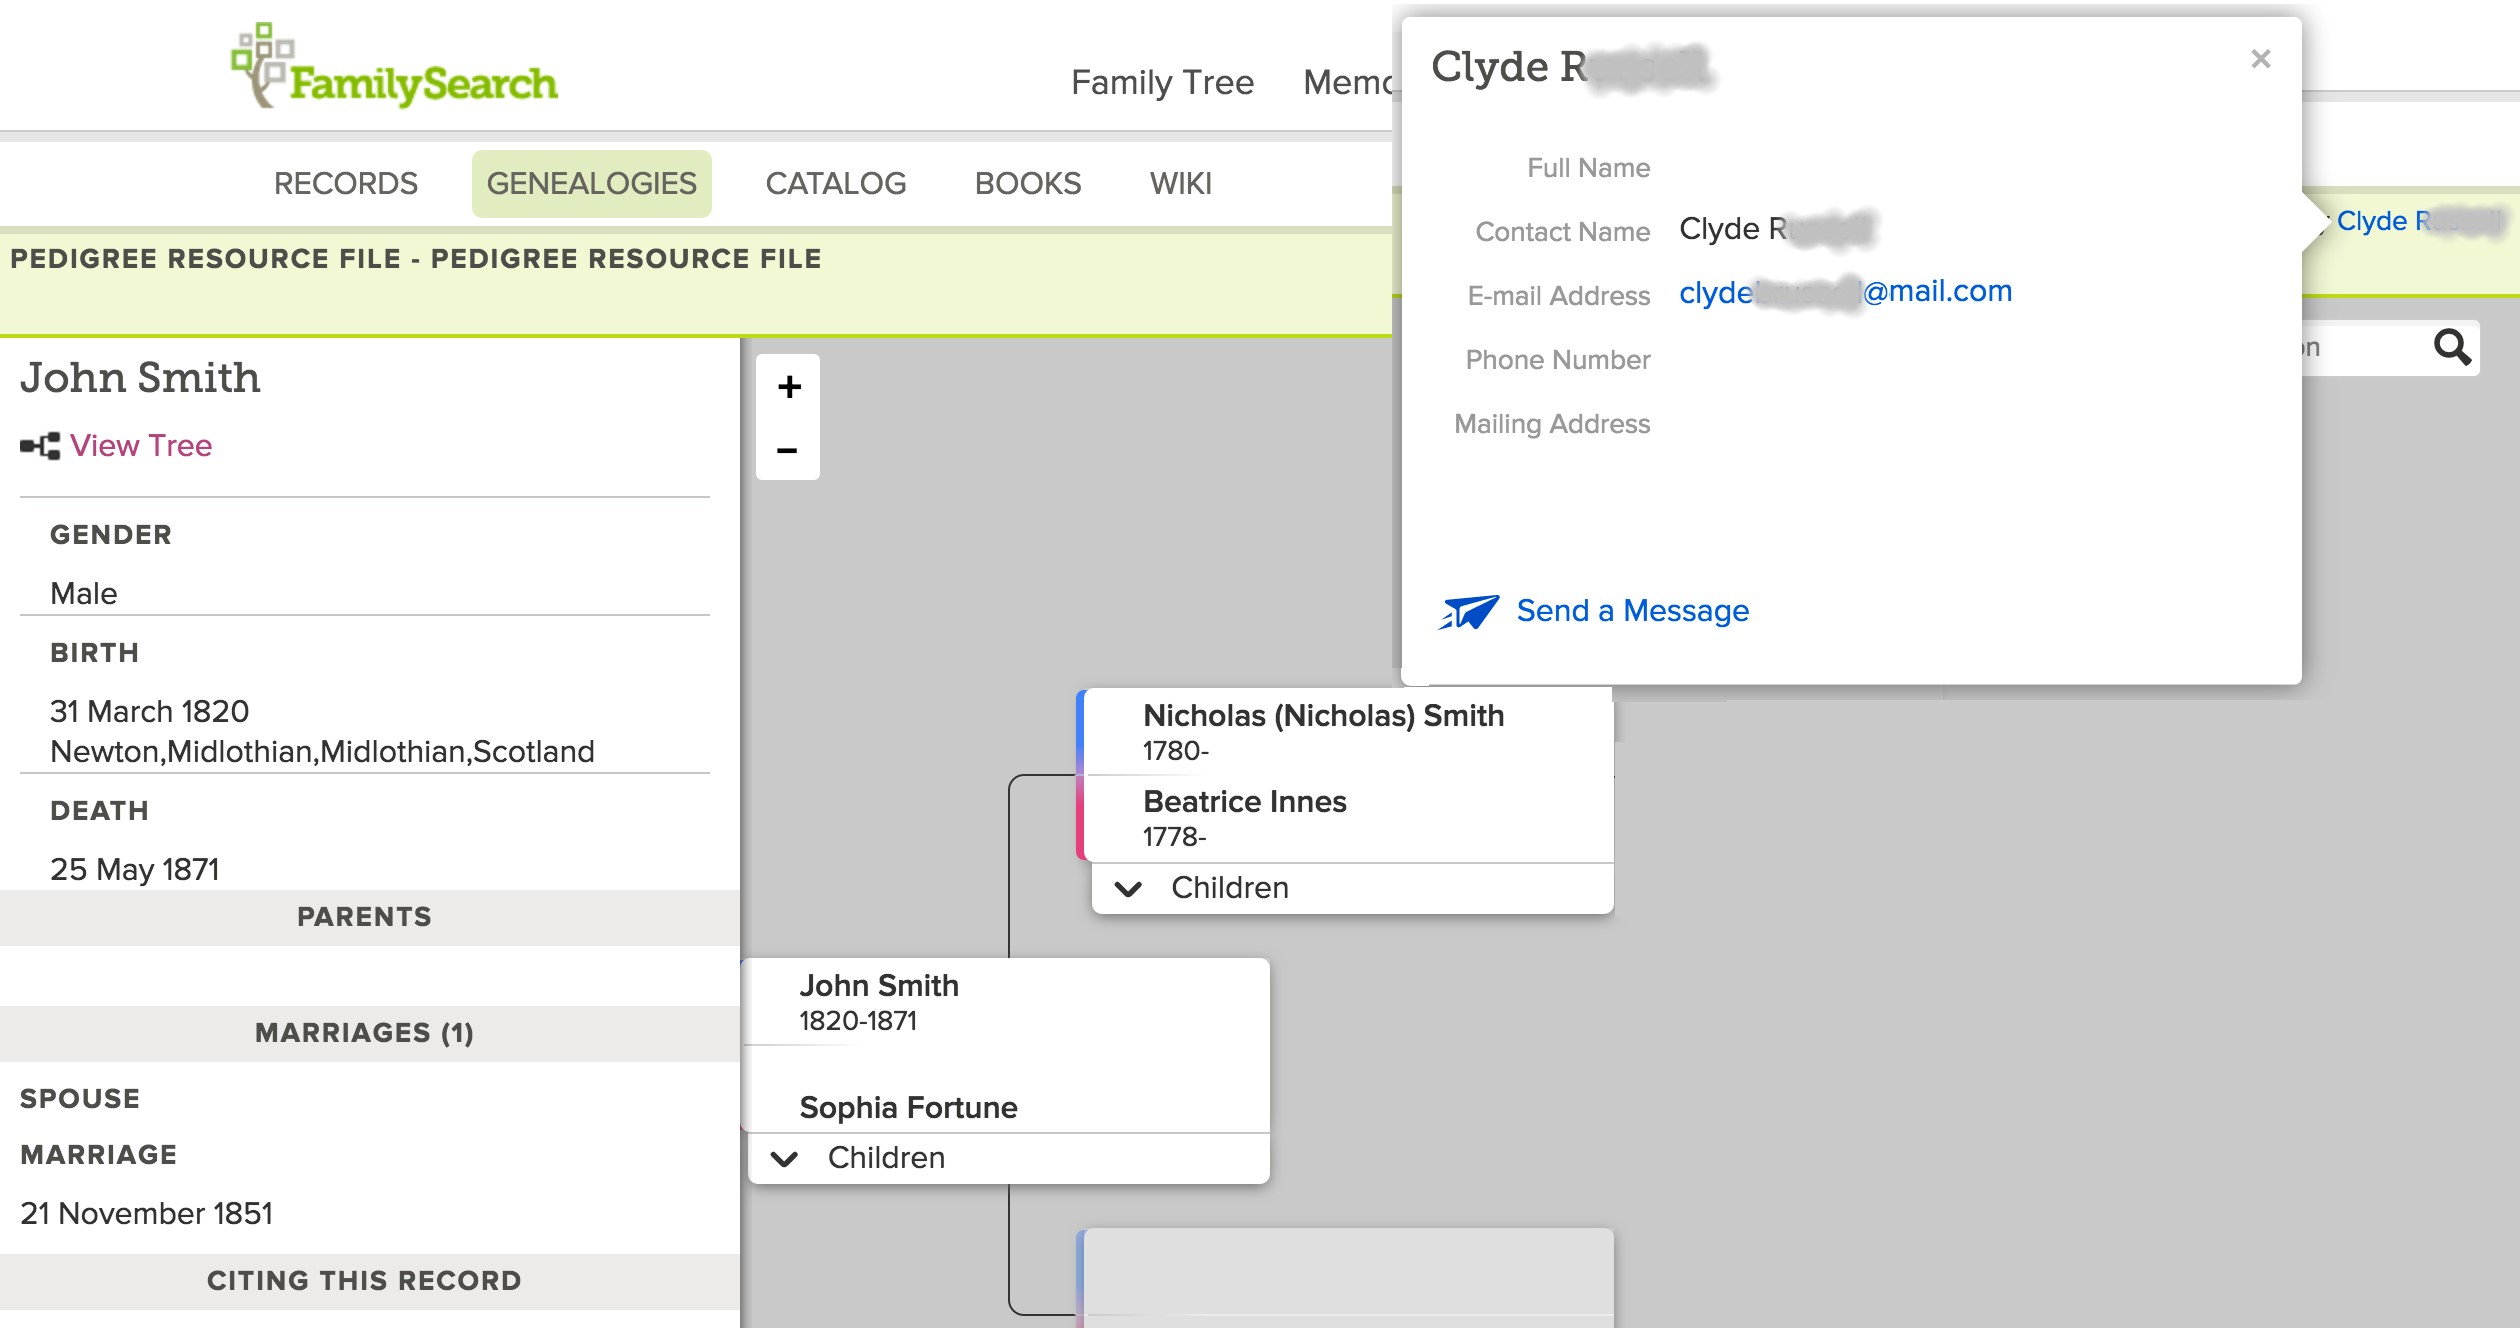 User-to-User Messaging Available in More Sections of FamilySearch.org